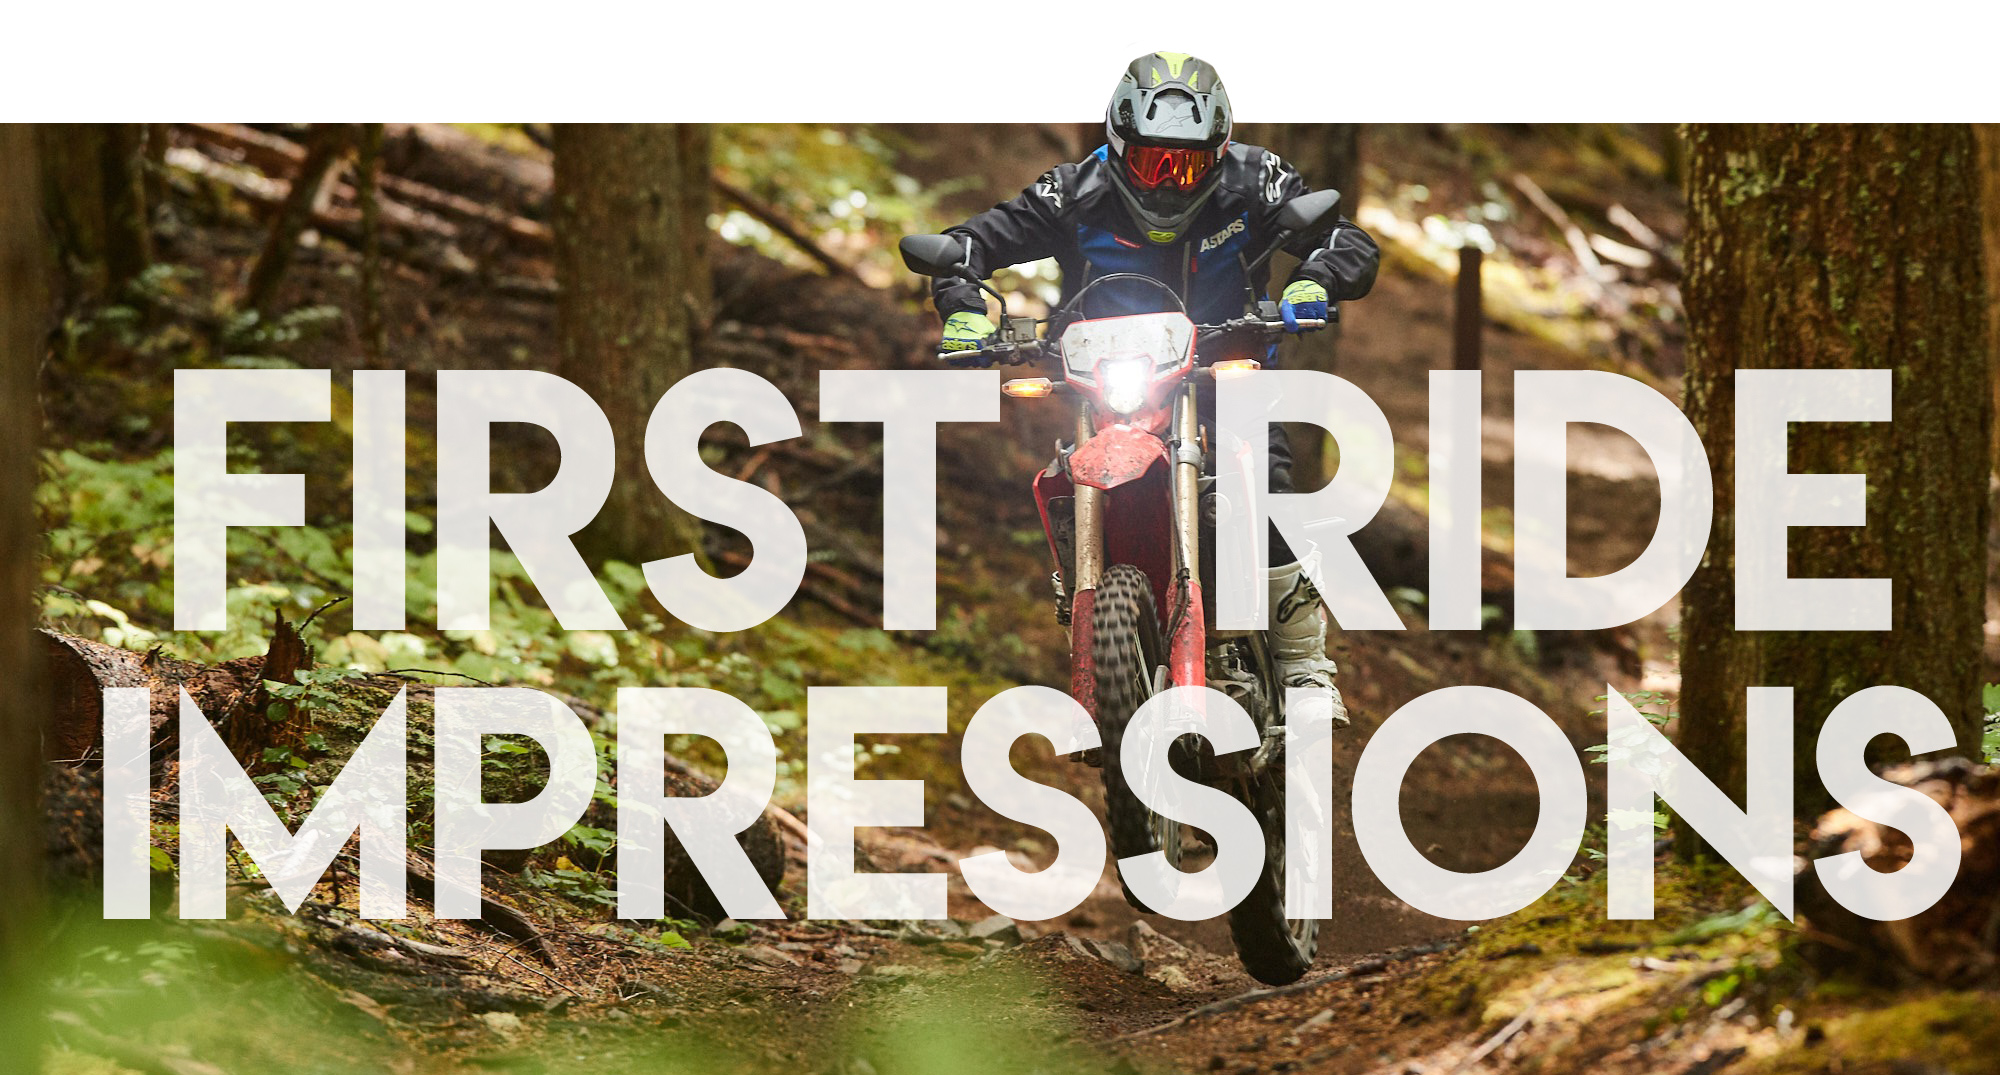 Fantastic 2019 Honda Crf450L Reviews And Key Features The Honda Shop Dailytribune Chair Design For Home Dailytribuneorg